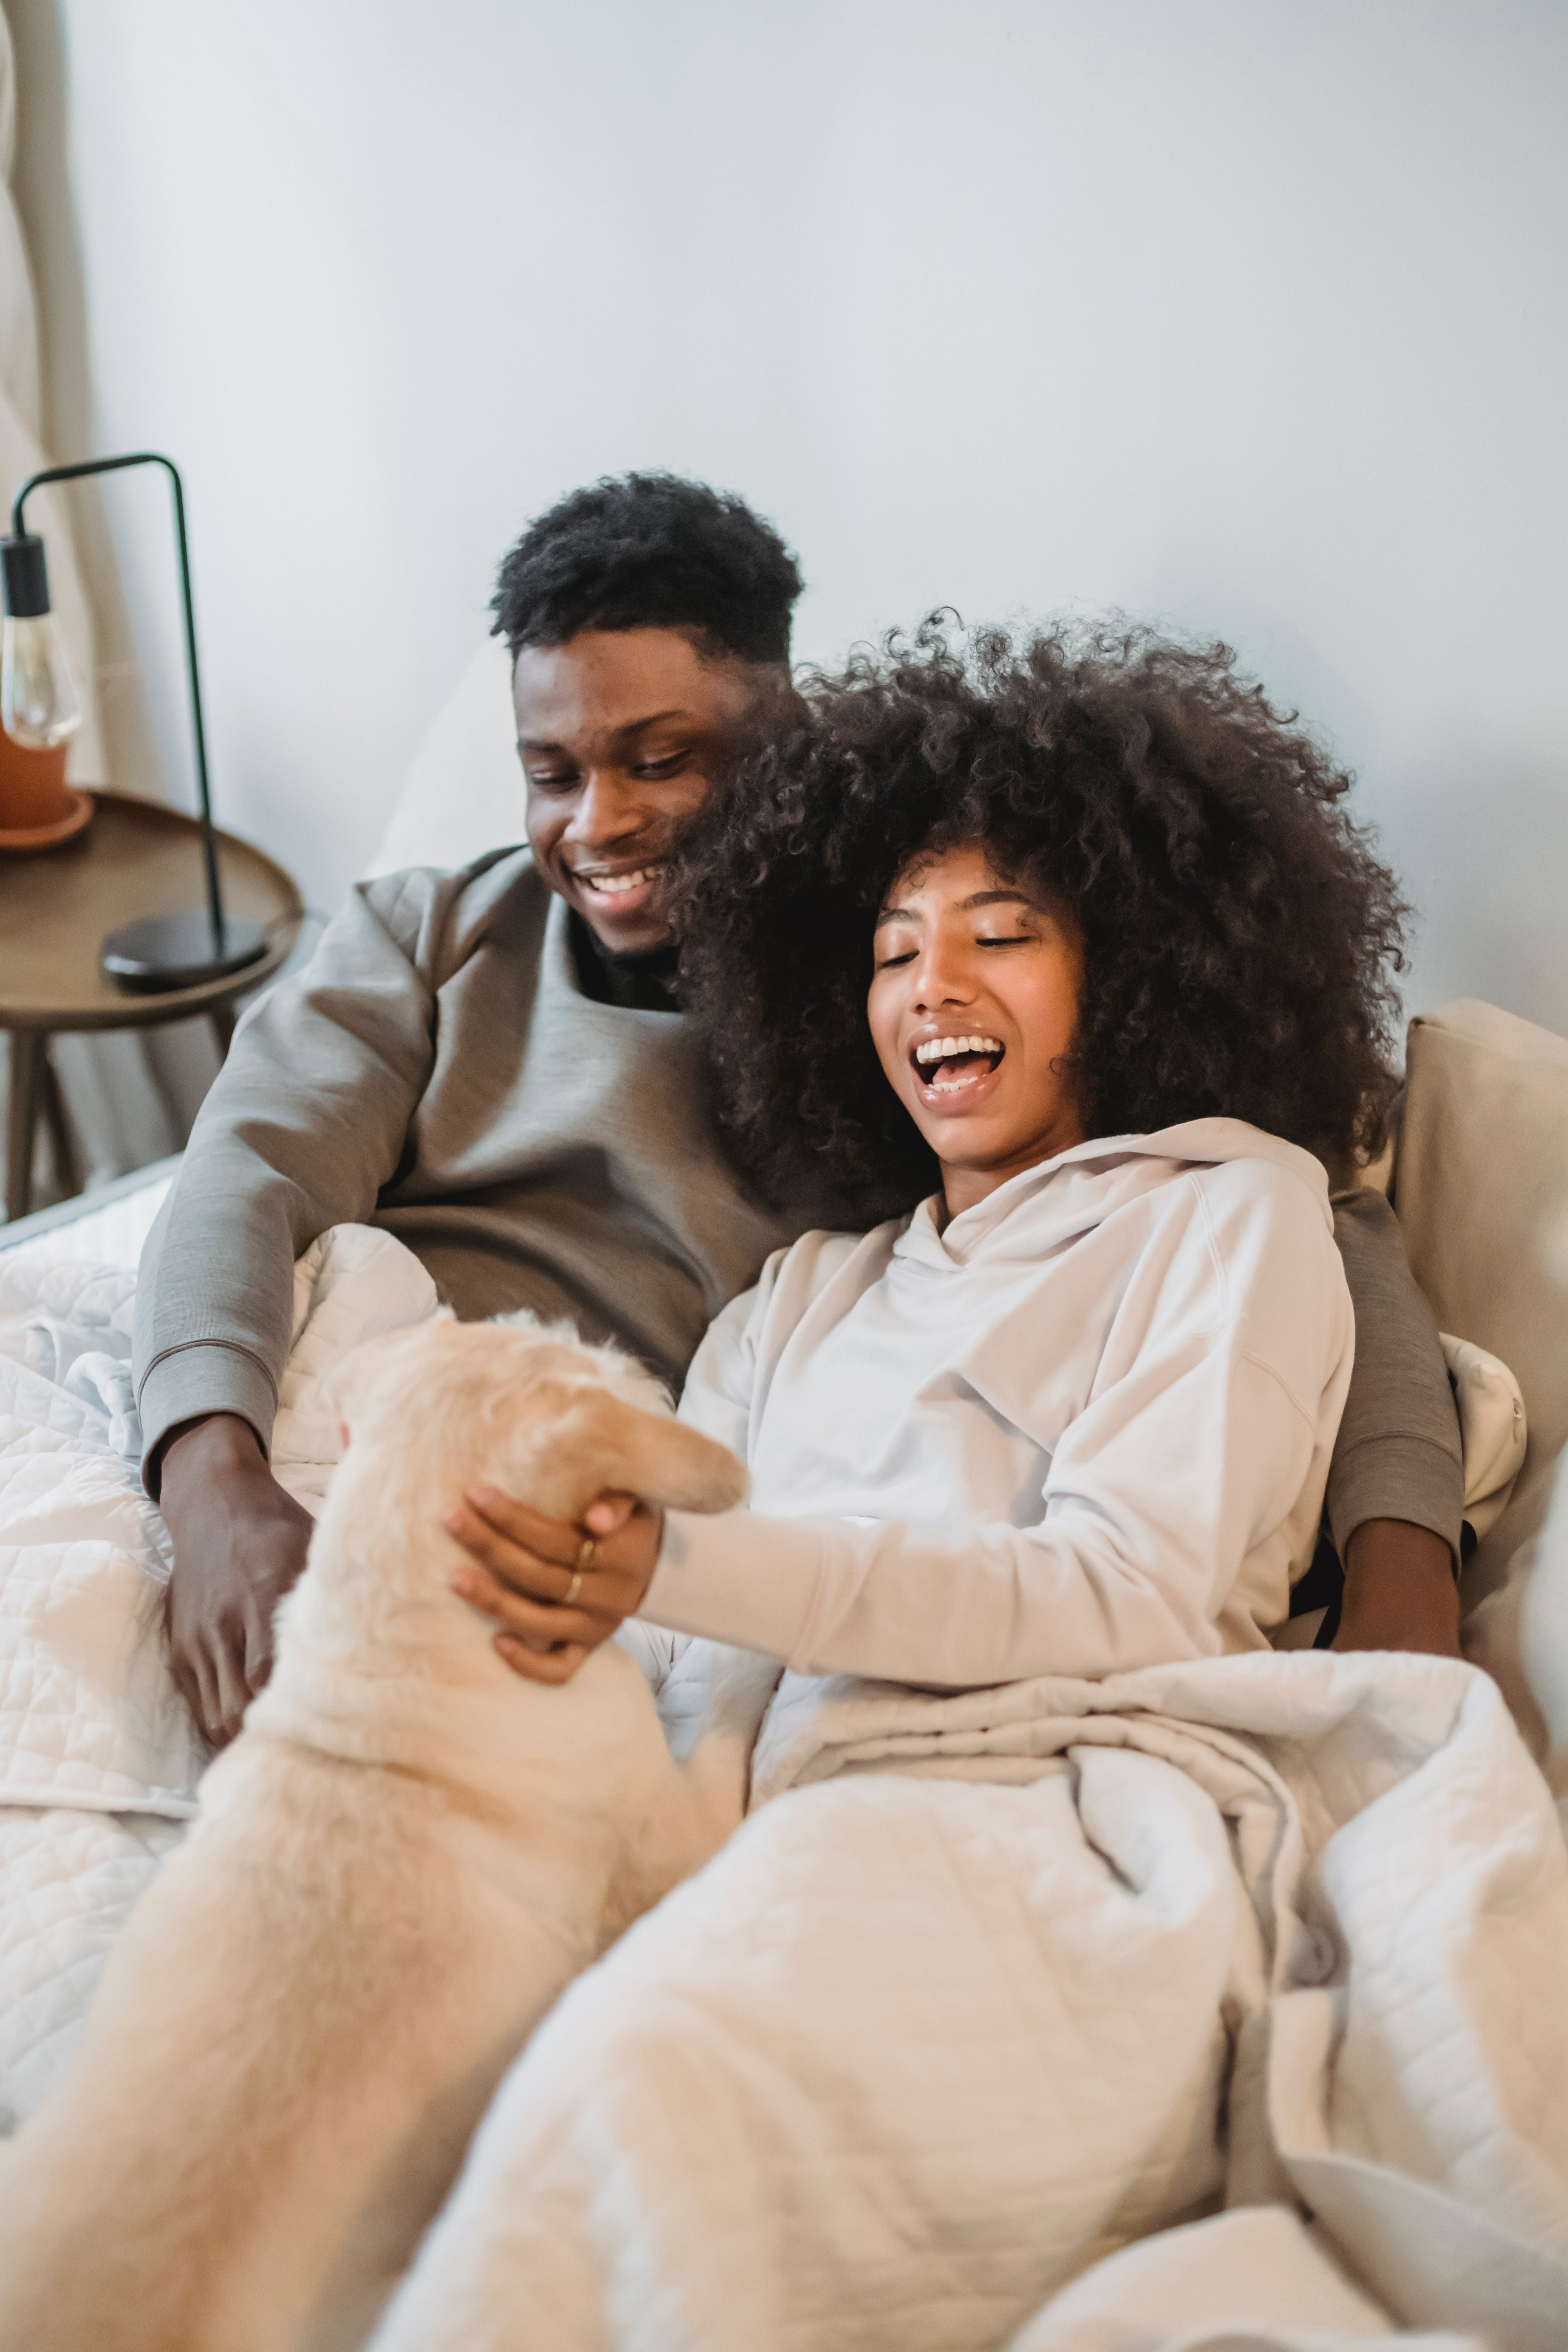 Pictured - A young couple snuggling up with their dog on the bed. | Source: Pexels